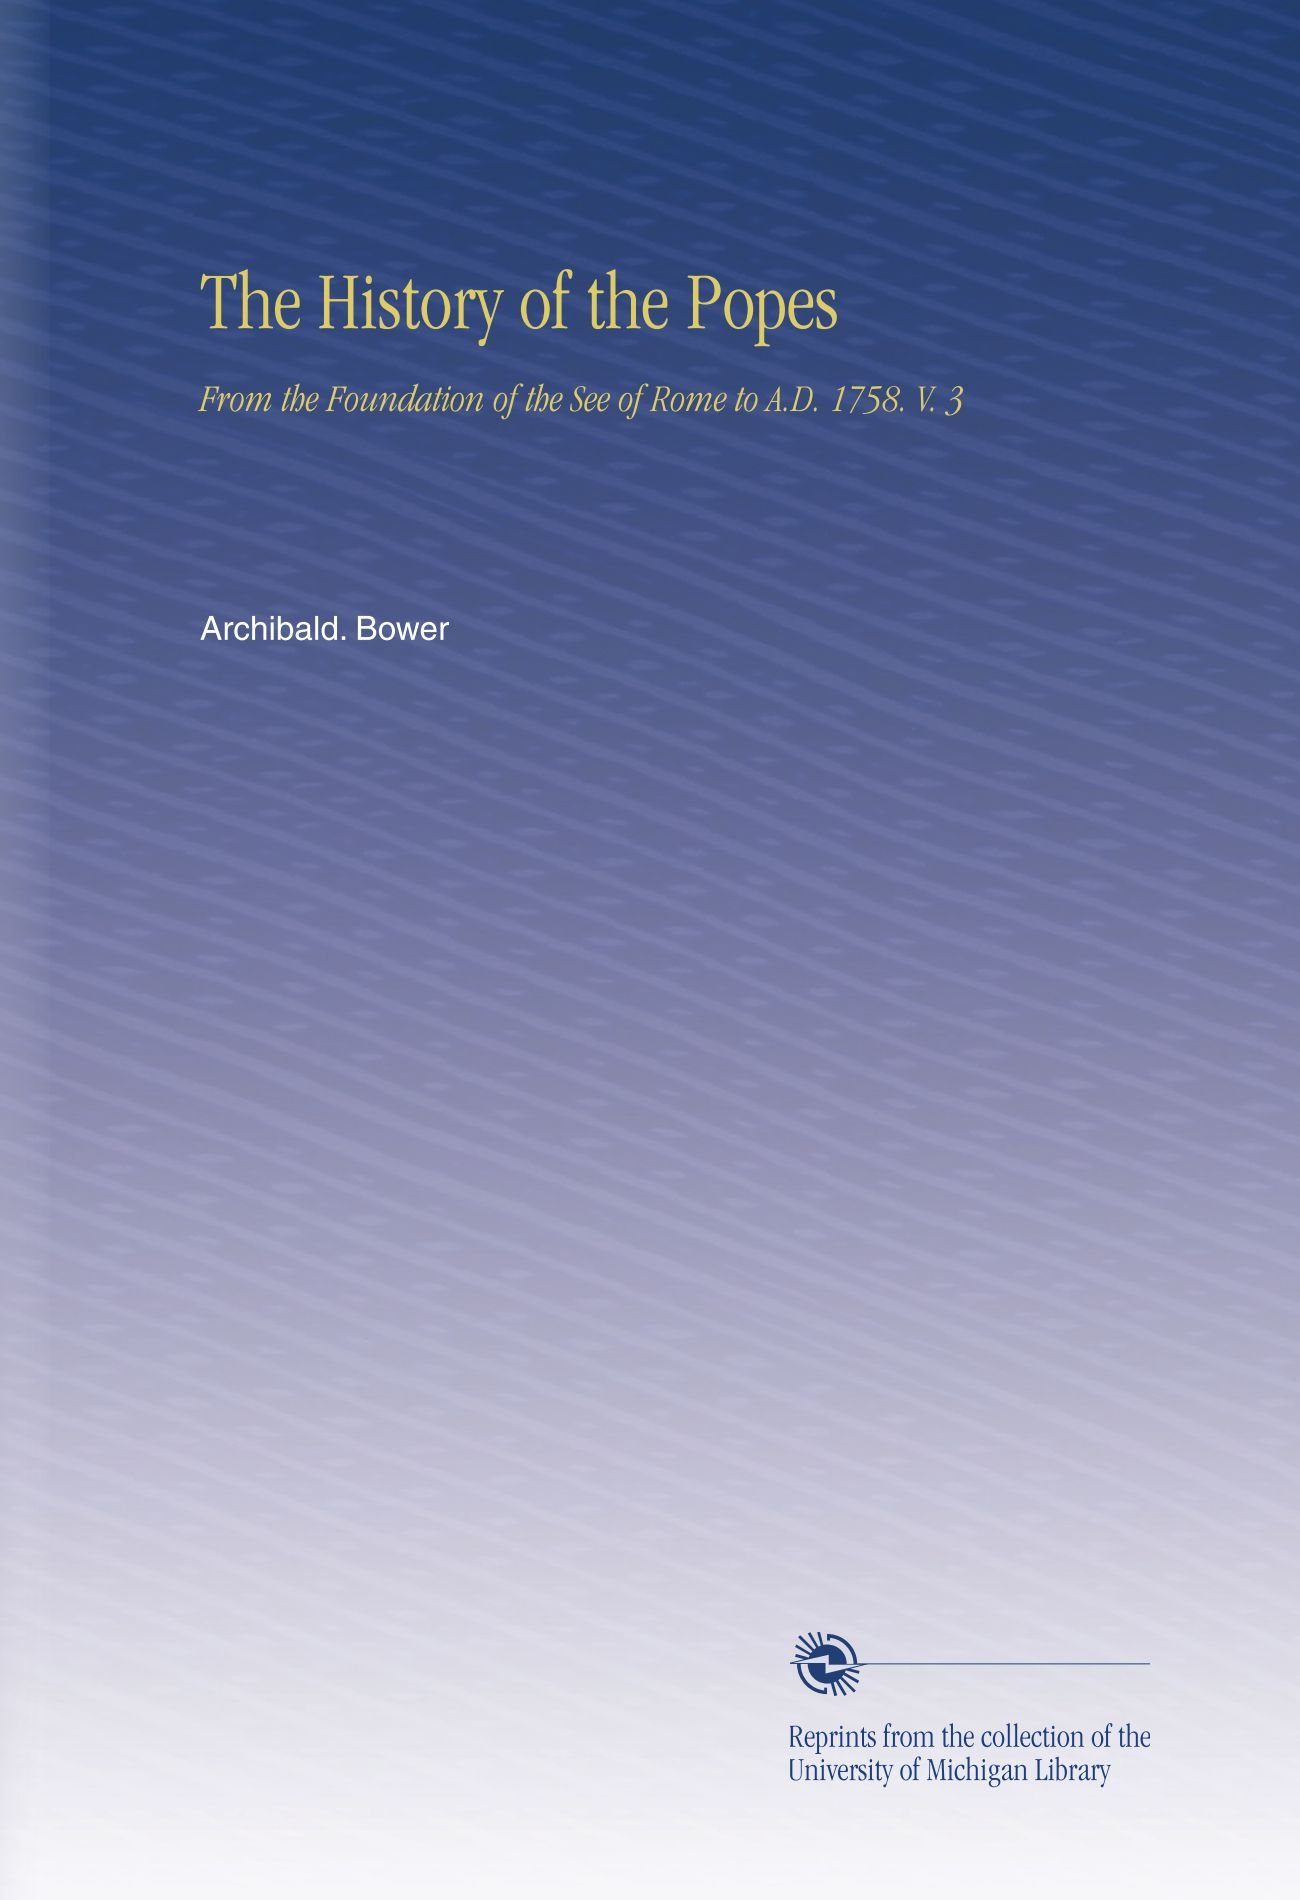 The History of the Popes: From the Foundation of the See of Rome to A.D. 1758. V. 3 pdf